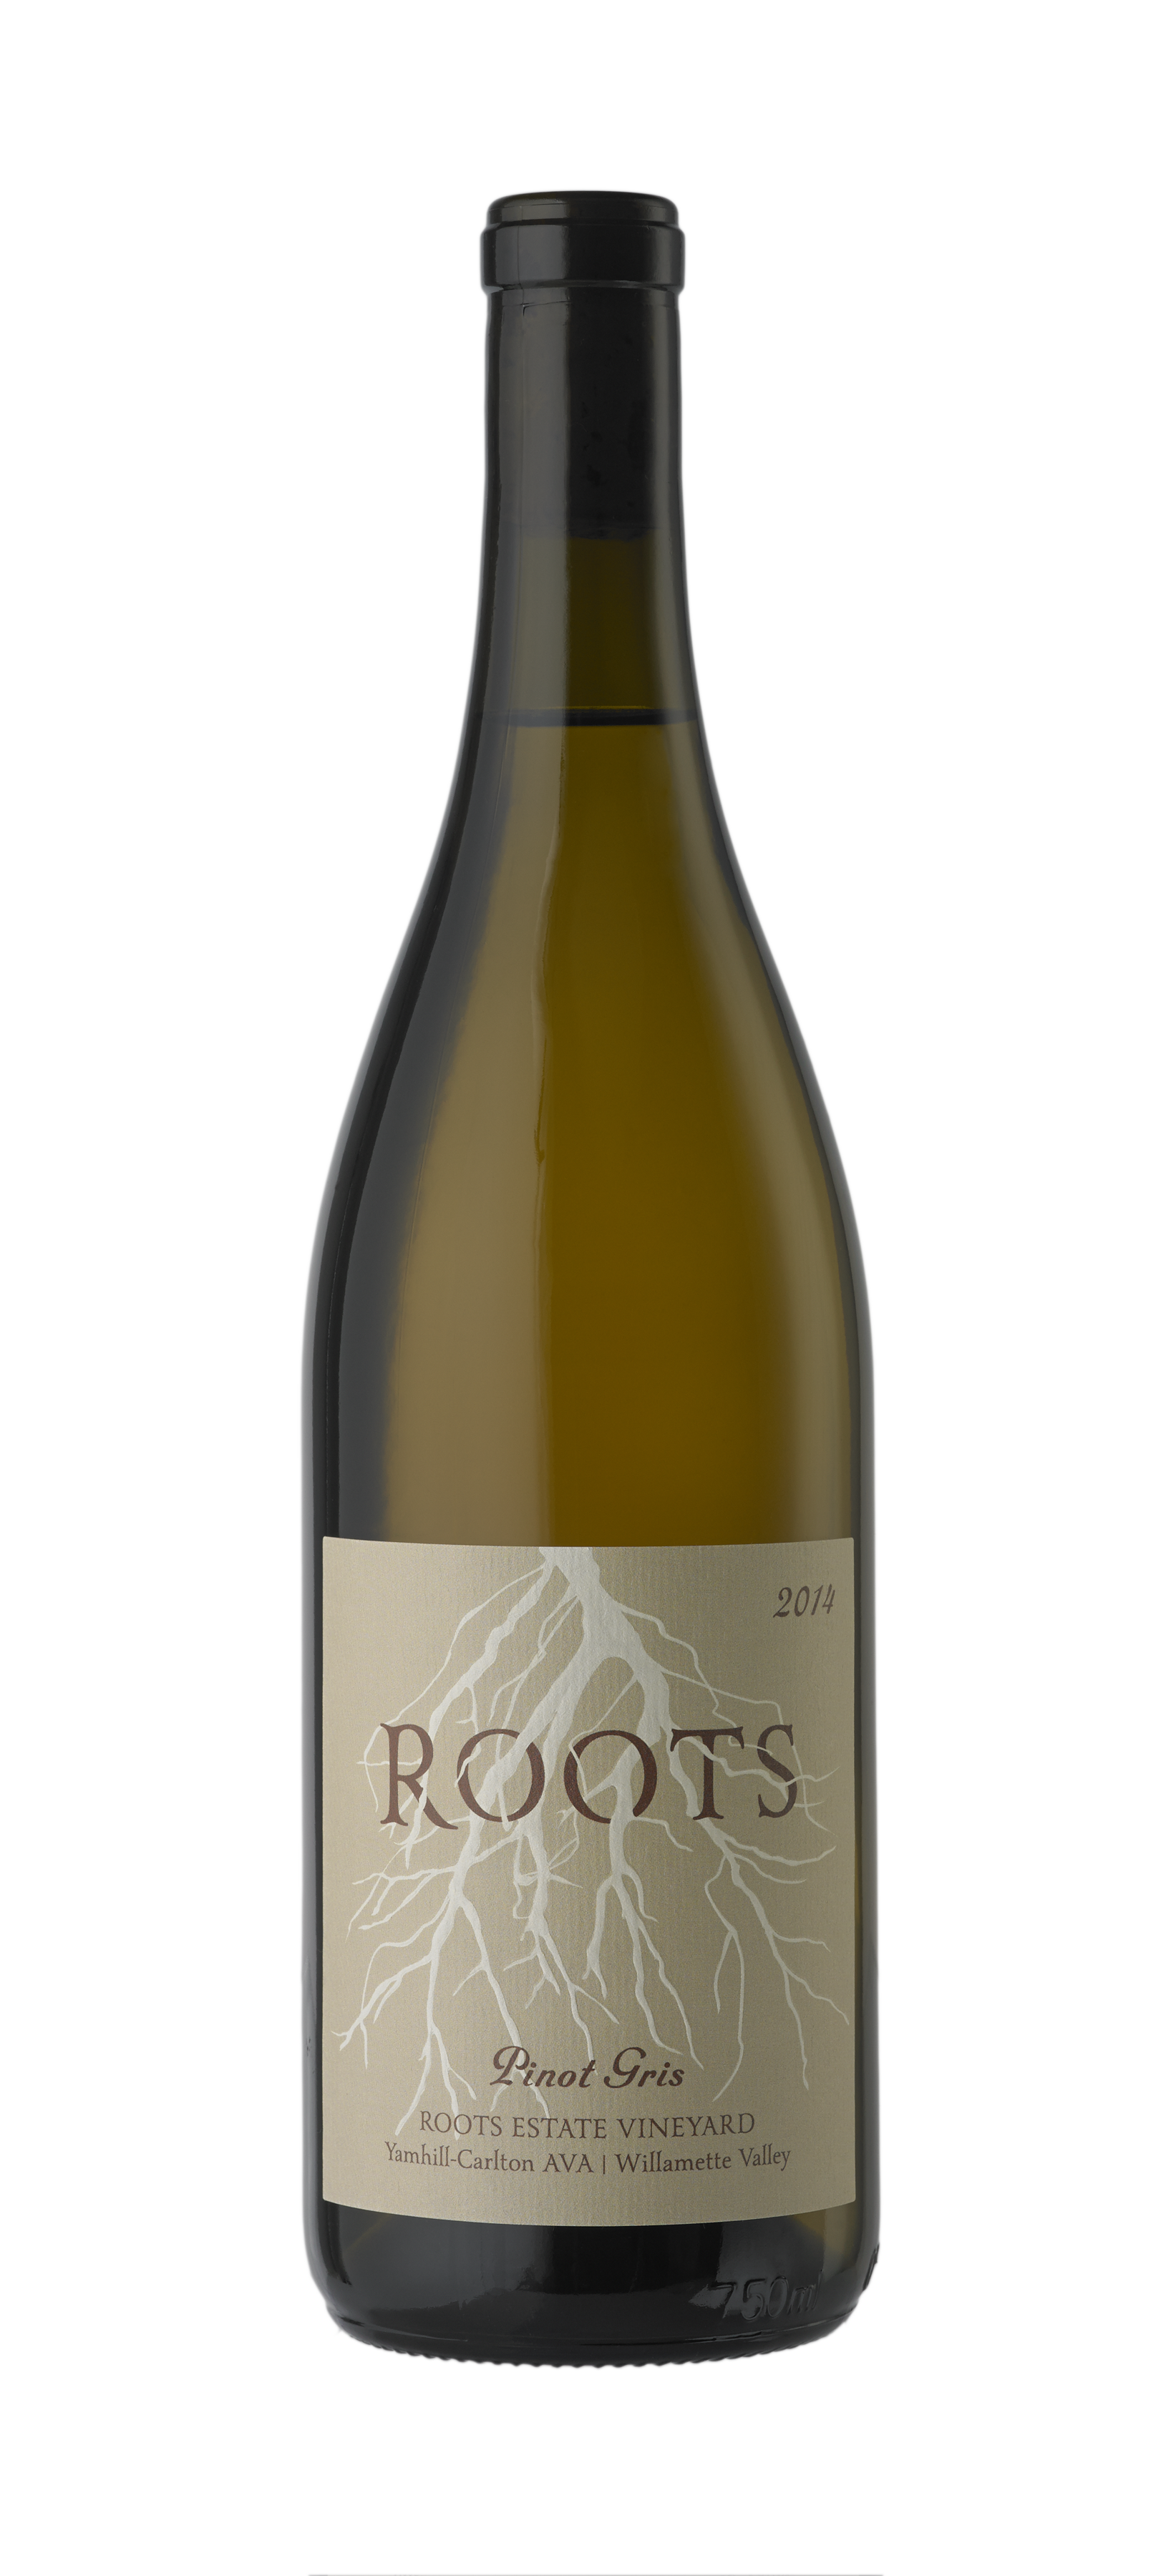 Roots_PinotGris_2014.png